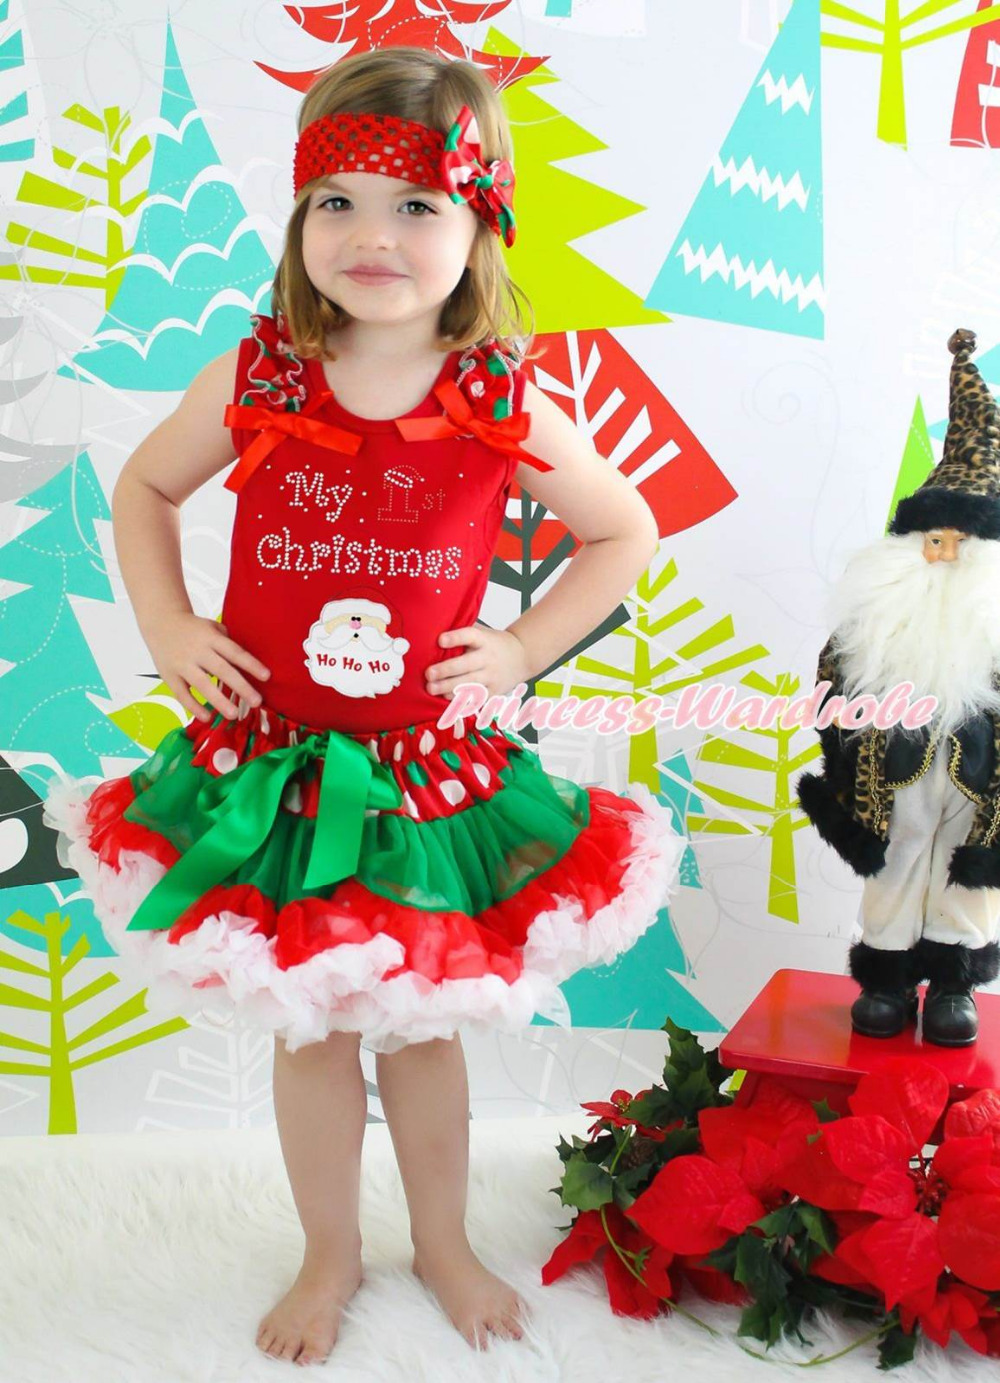 My 1ST Christmas Santa Claus Red Top Xmas Dot Waist Girls Pettiskirt Outfit 1-8Y my 1st christmas santa claus white top xmas dot waist girls pettiskirt set 1 8y